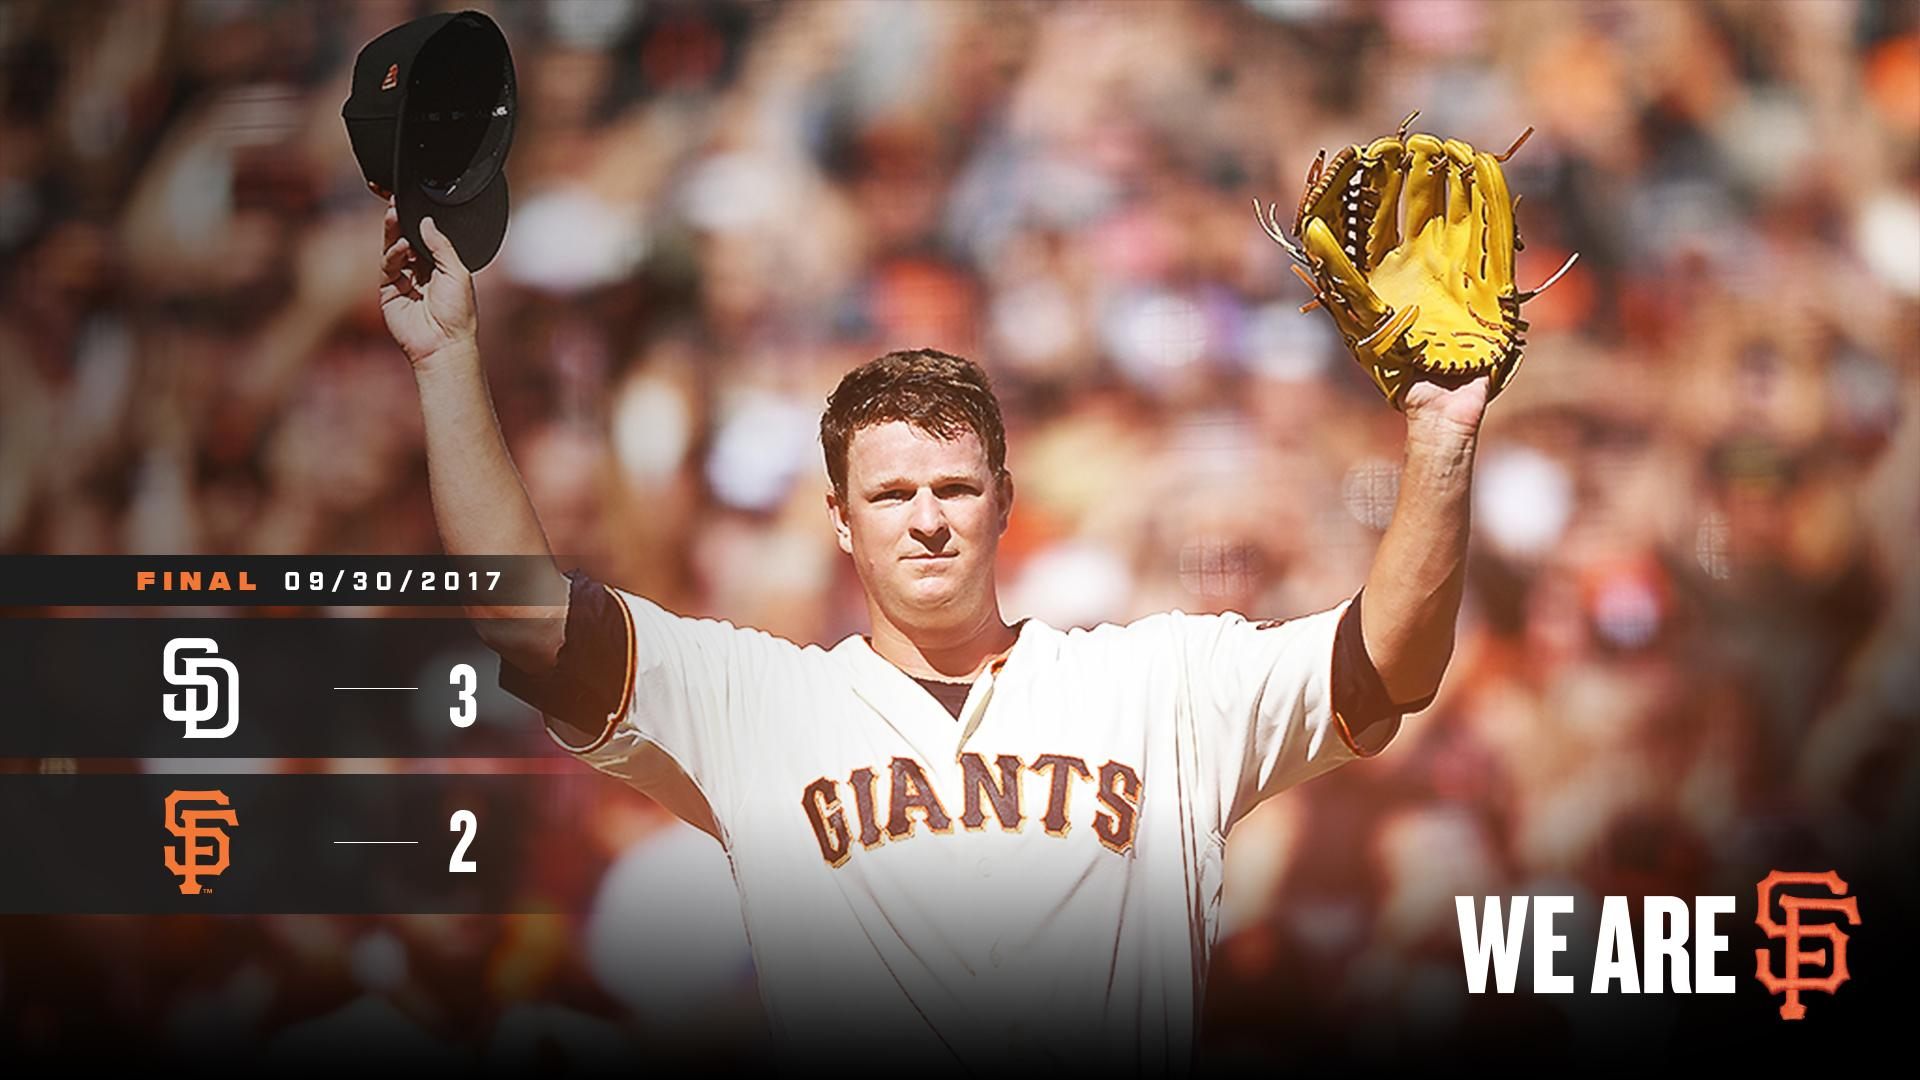 RECAP: Today was all about you! #ThanksCain | #SFGiants https://t.co/EjDYWVRJIG https://t.co/u7lv9J8KUW